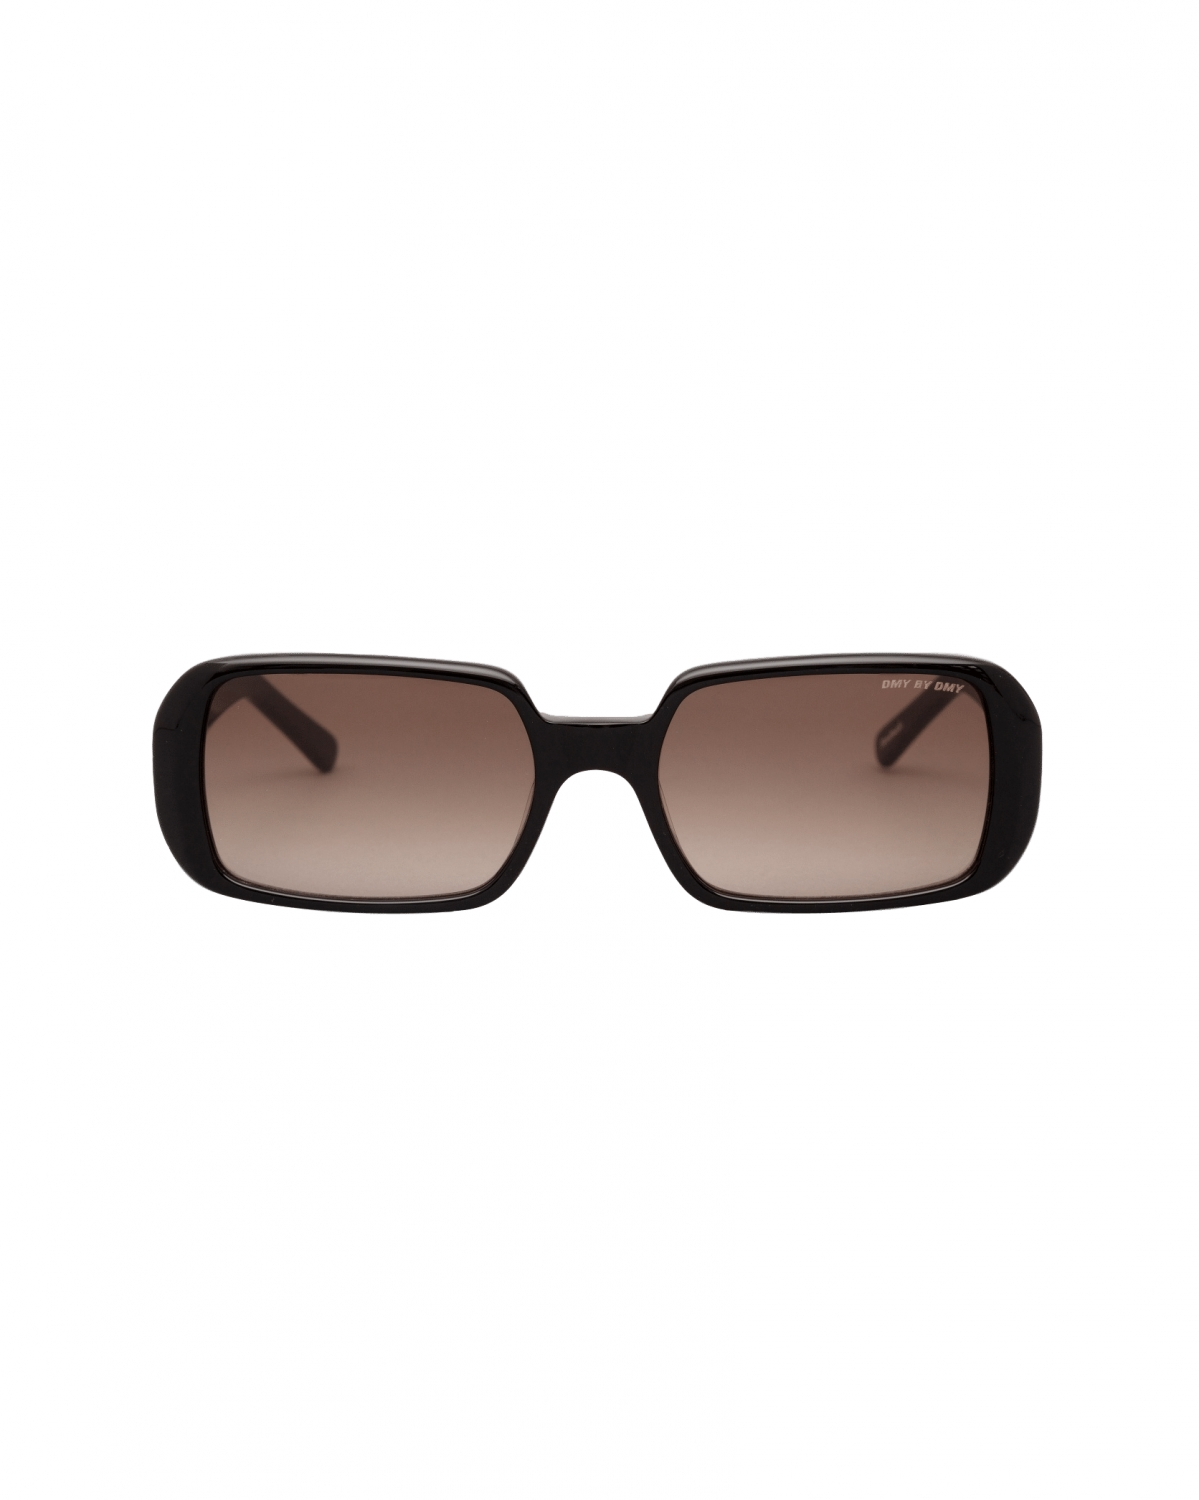 Square over-sized sunglasses handcrafted from Italian acetate and featuring brown gradient lenses by Dmy by Dmy, available on dmybydmy.com for EUR150 Kendall Jenner Sunglasses Exact Product